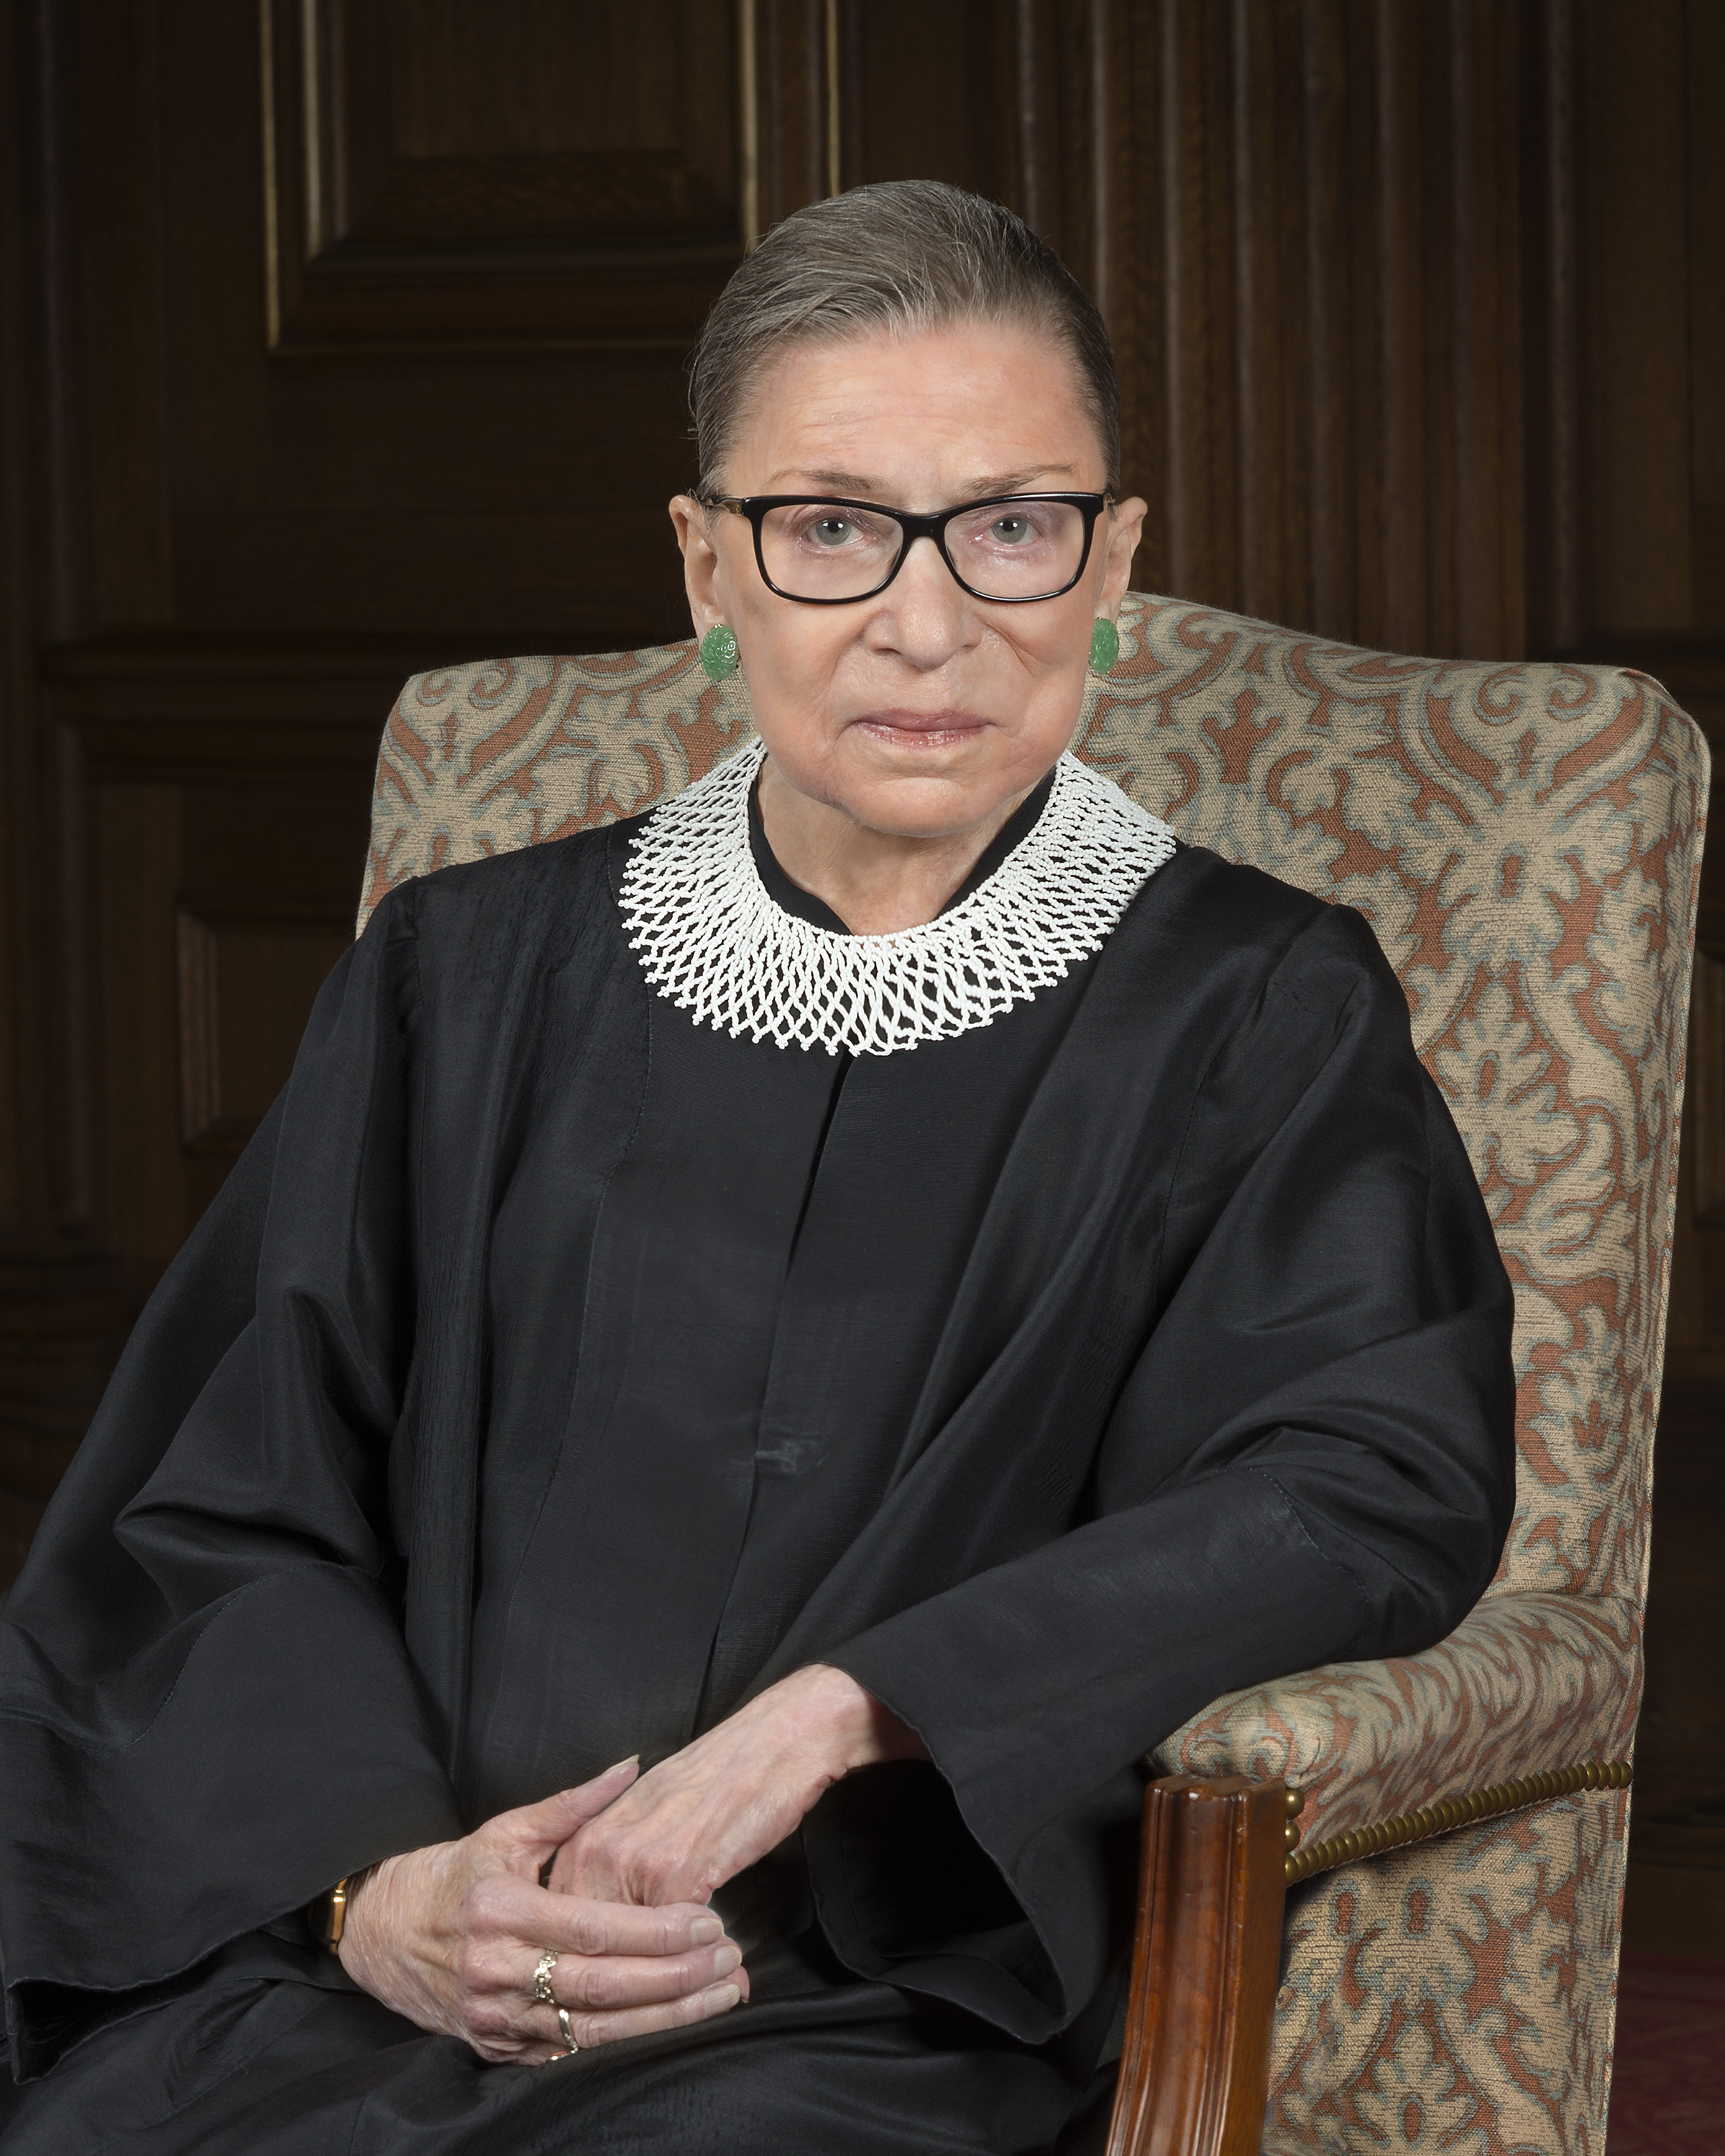 Remembering Ruth: The long-lasting legacy and immediate controversy of Supreme Court Justice Ruth Bader Ginsburg